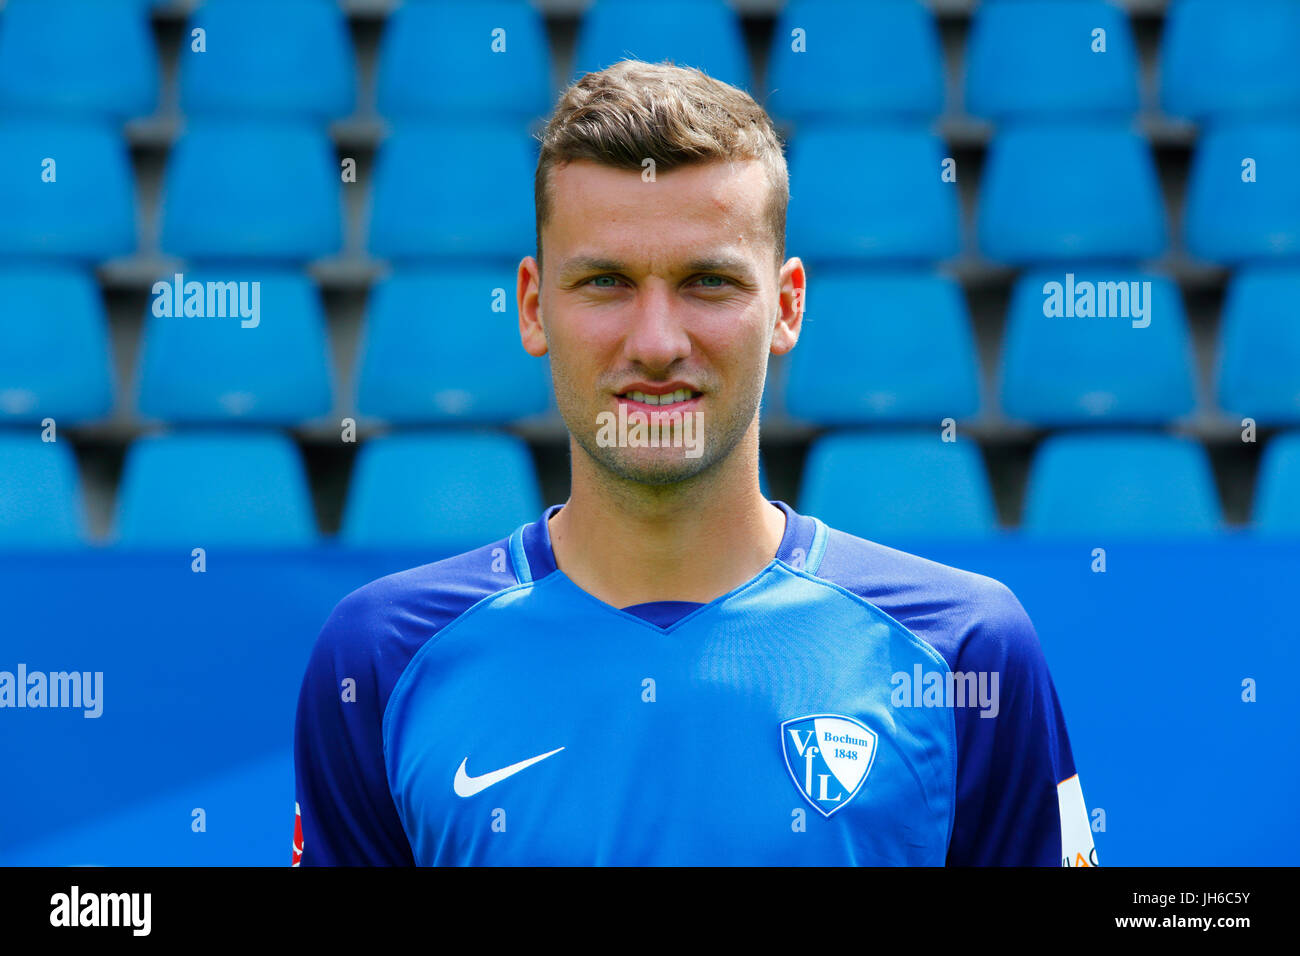 football, 2. Bundesliga, 2017/2018, VfL Bochum, team presentation for the game season, Tom Weilandt - Stock Image